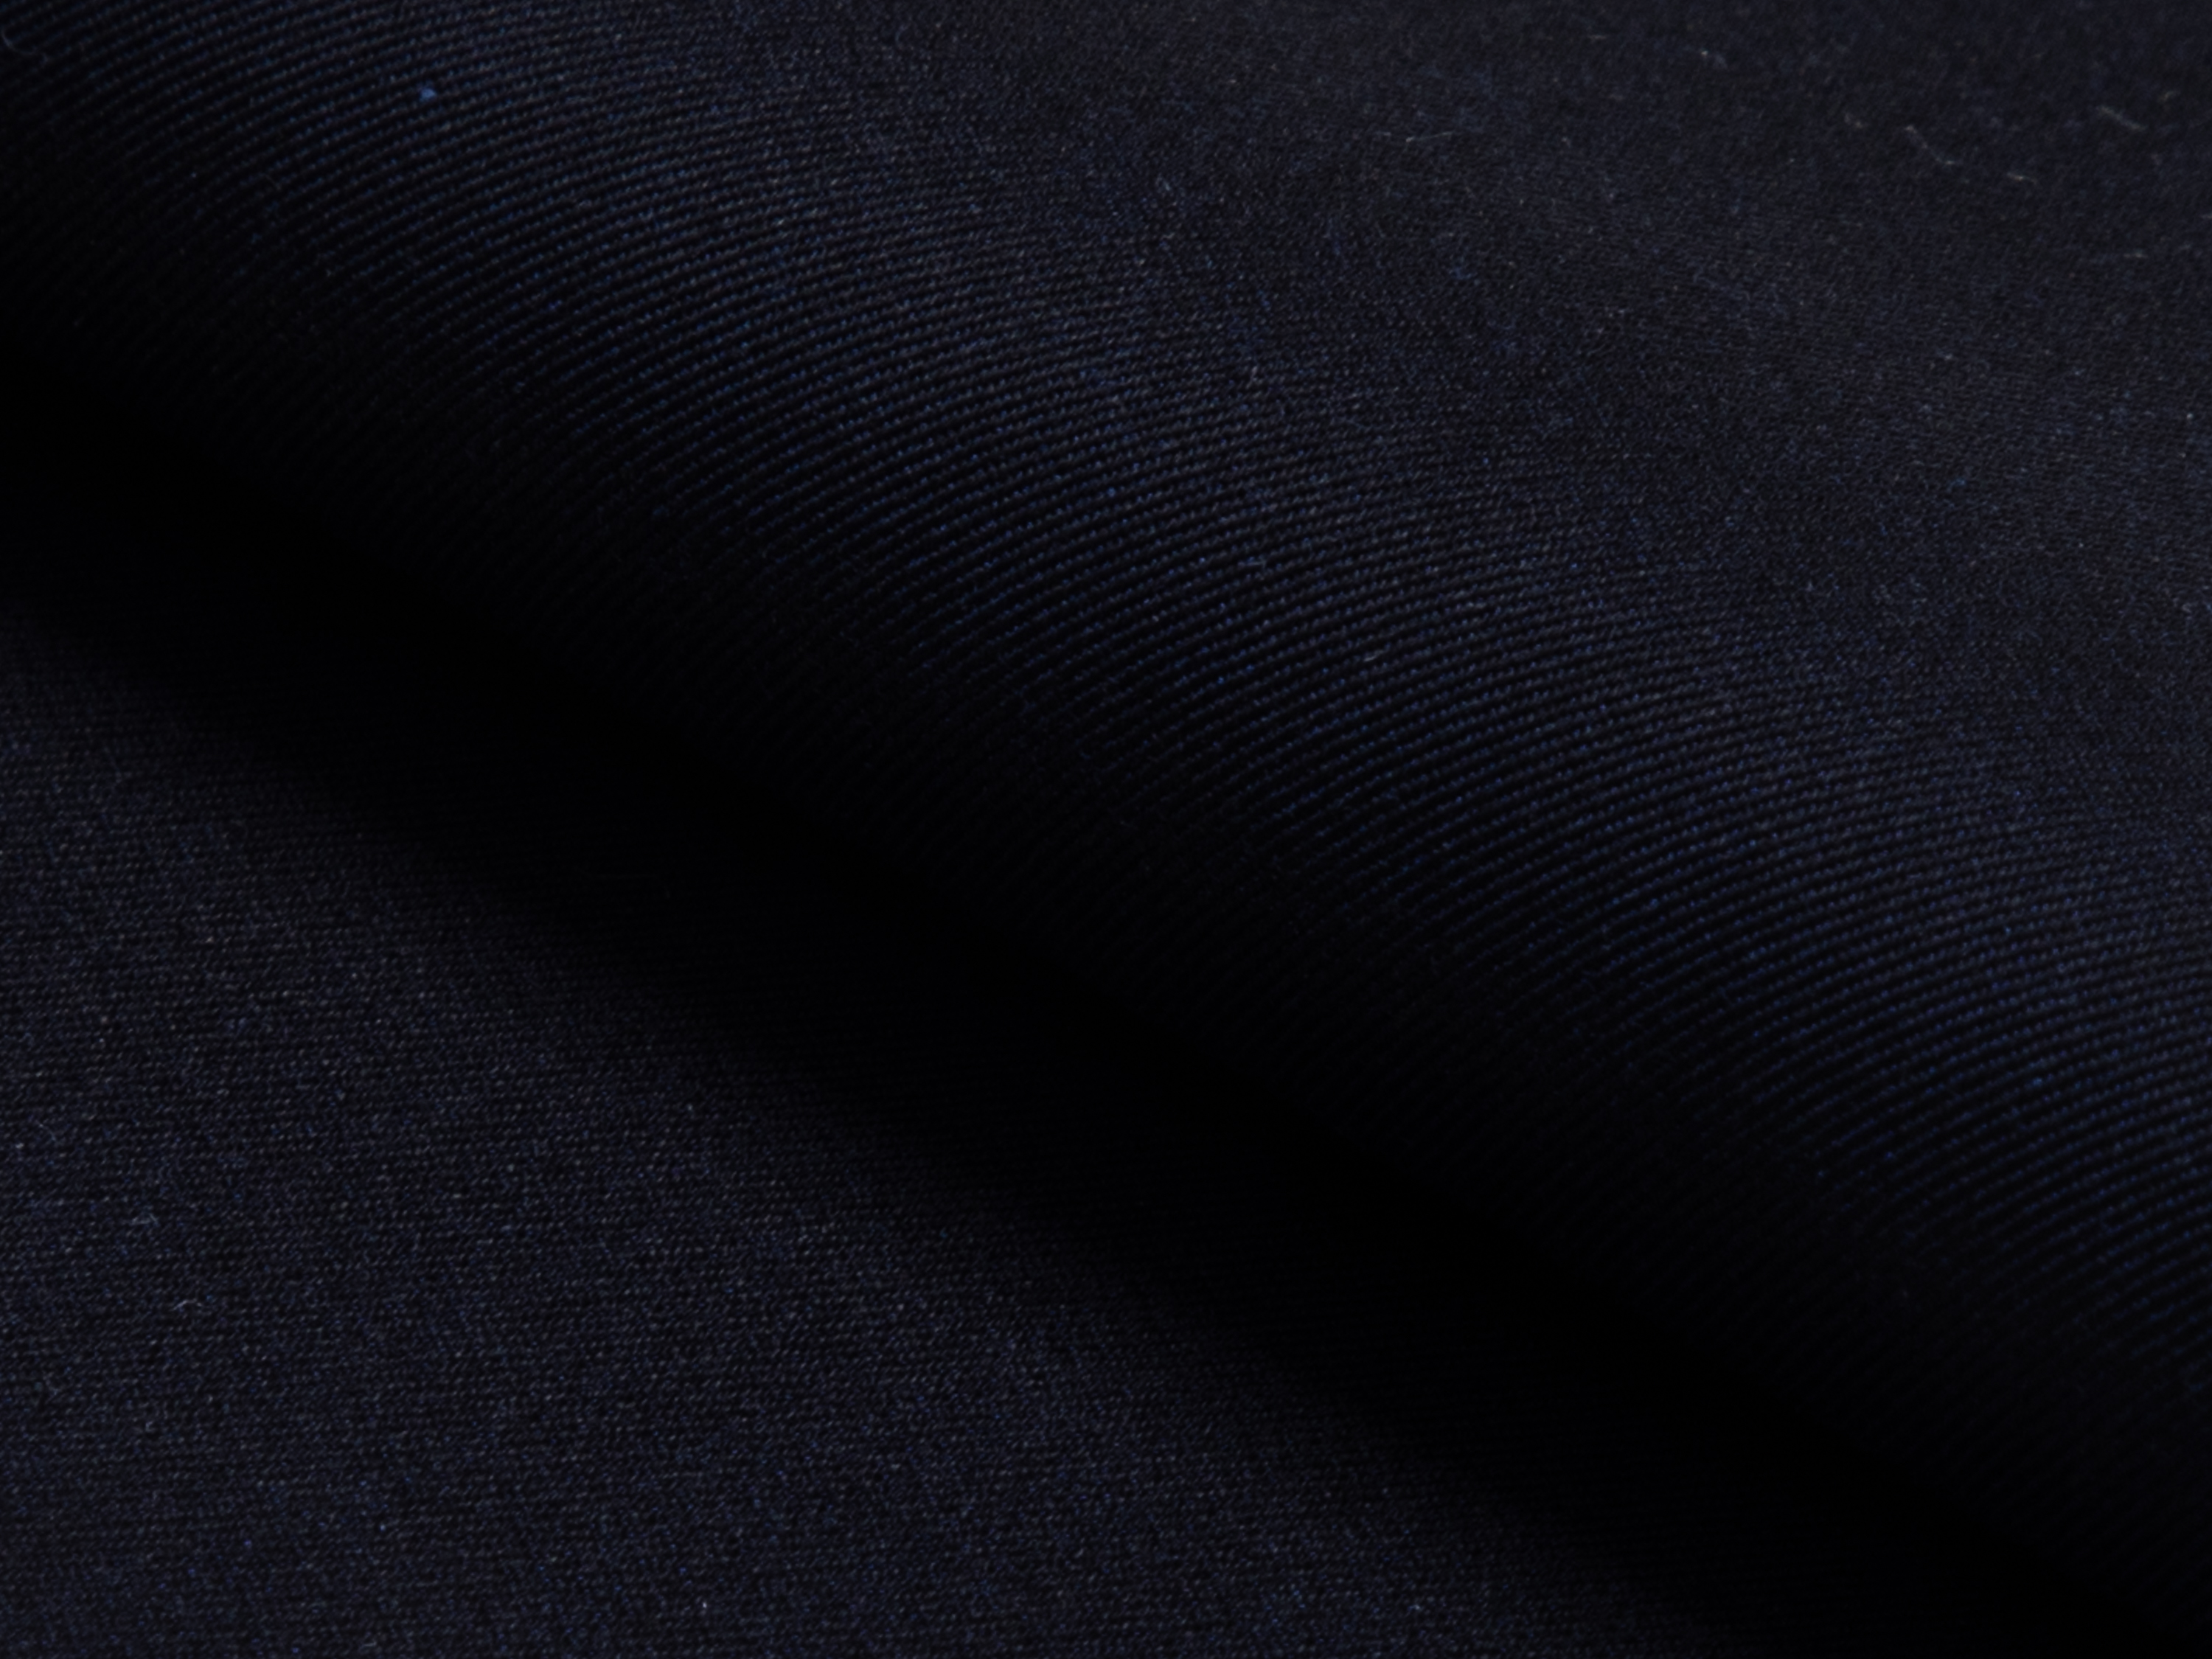 Buy tailor made shirts online - MAYFAIR (NEW) - Twill Navy